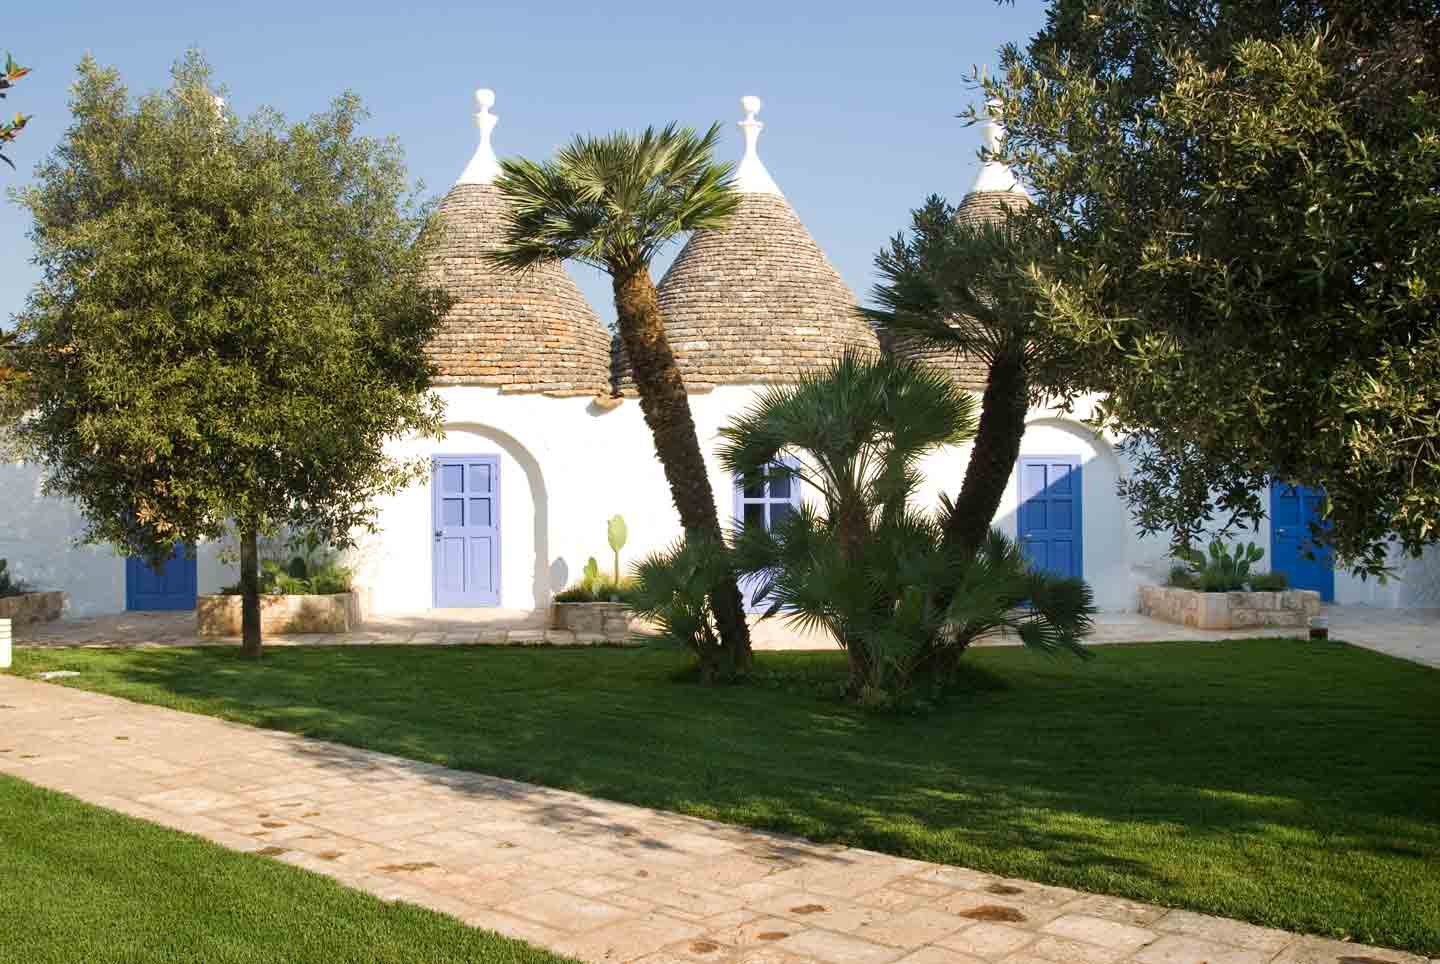 Courtyard in a masseria in Valle d'Itria